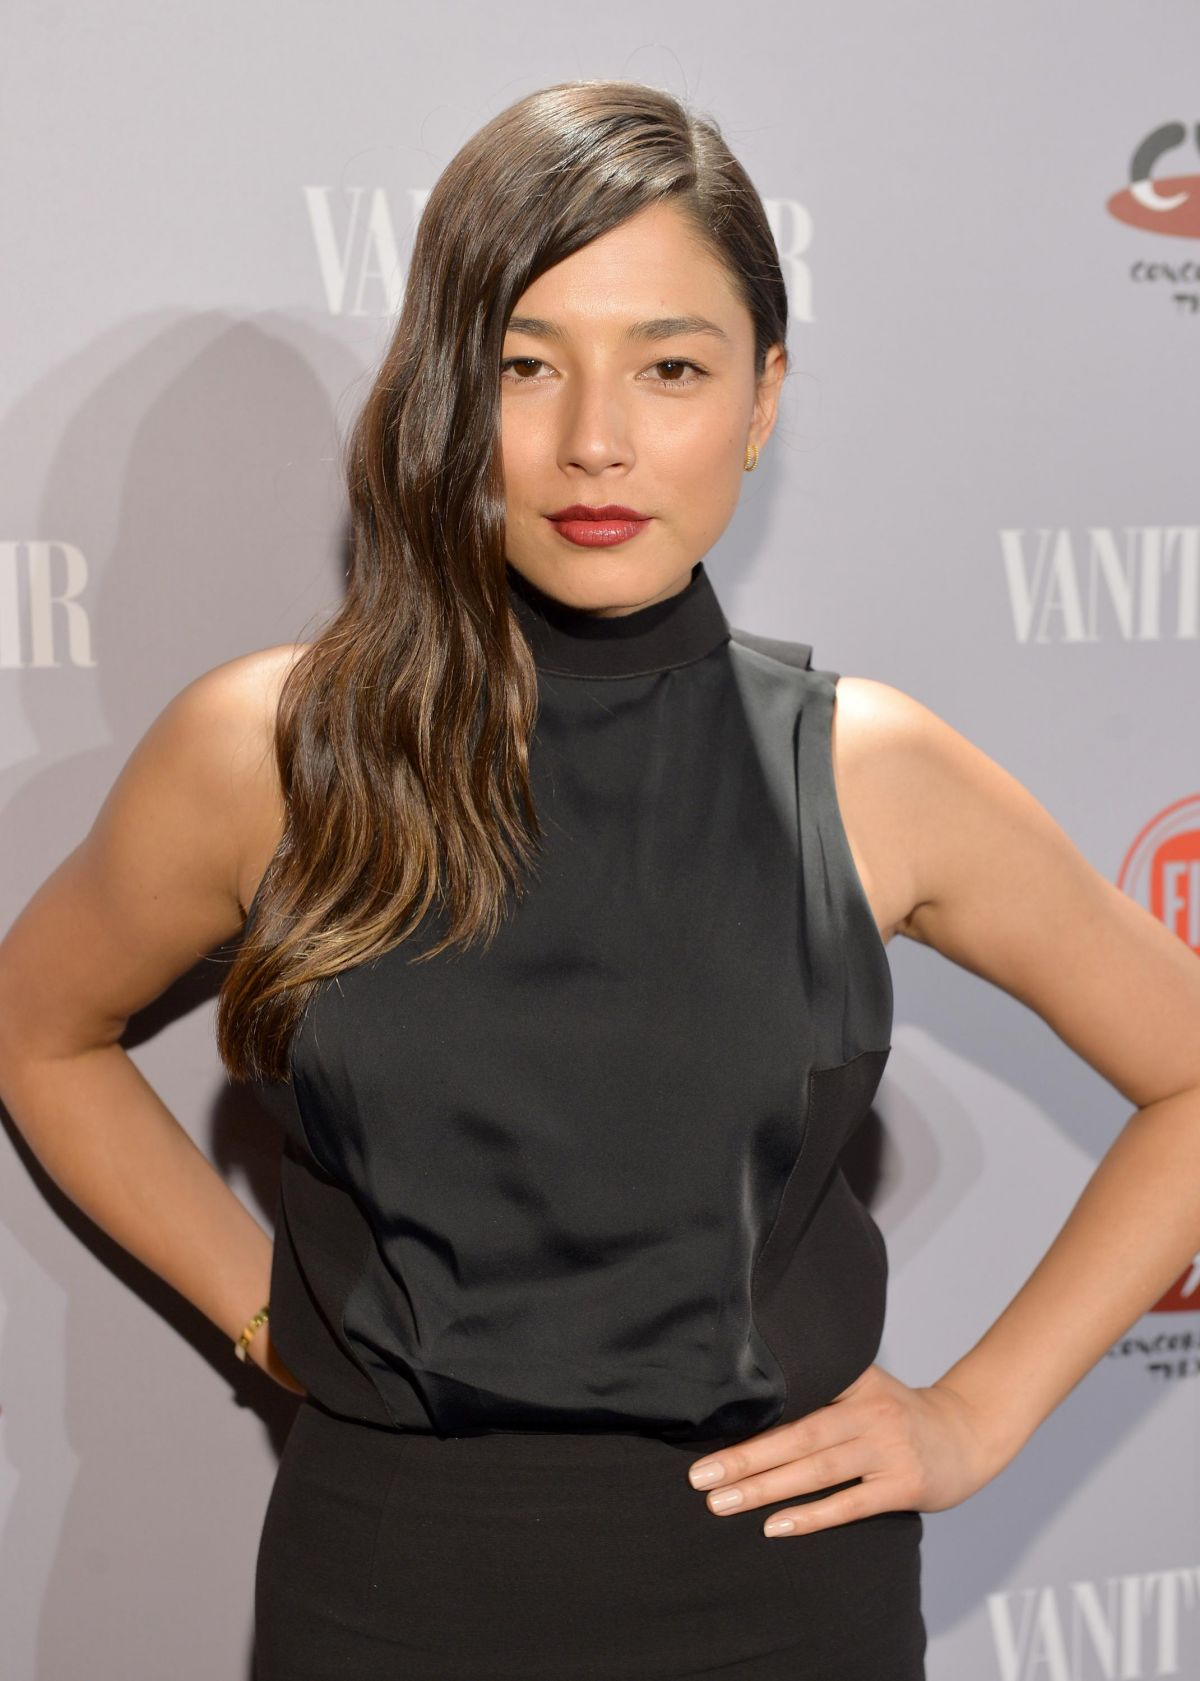 Young Jessica Gomes nude photos 2019